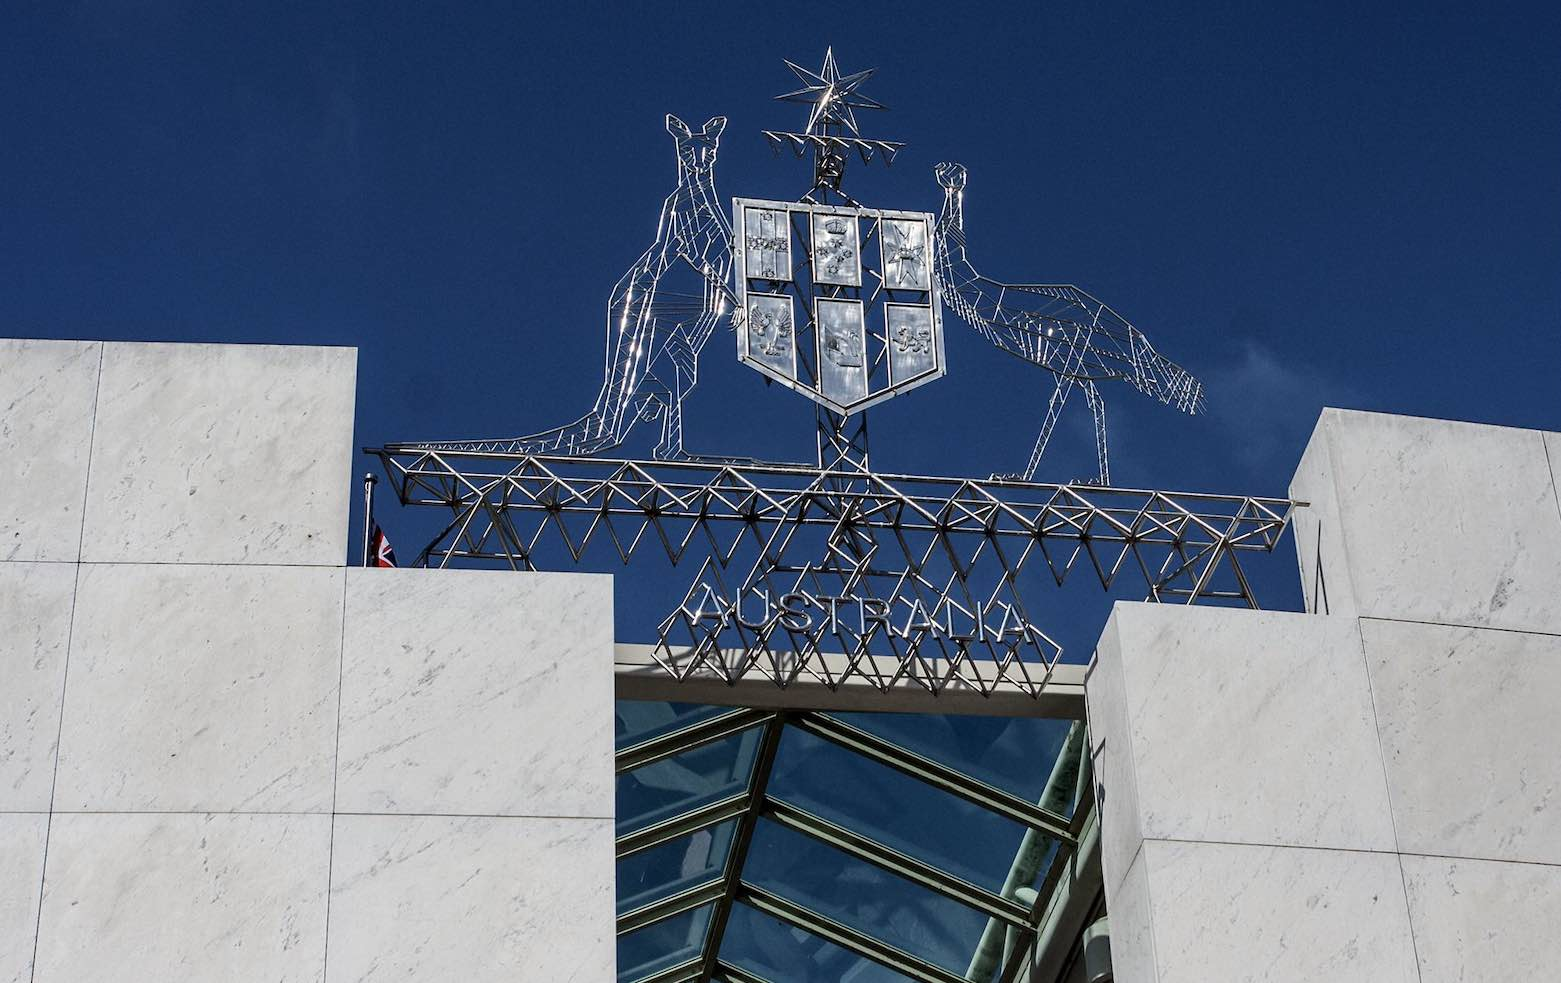 The Australian coat of arms over parliament house, Canberra (John/Flickr)